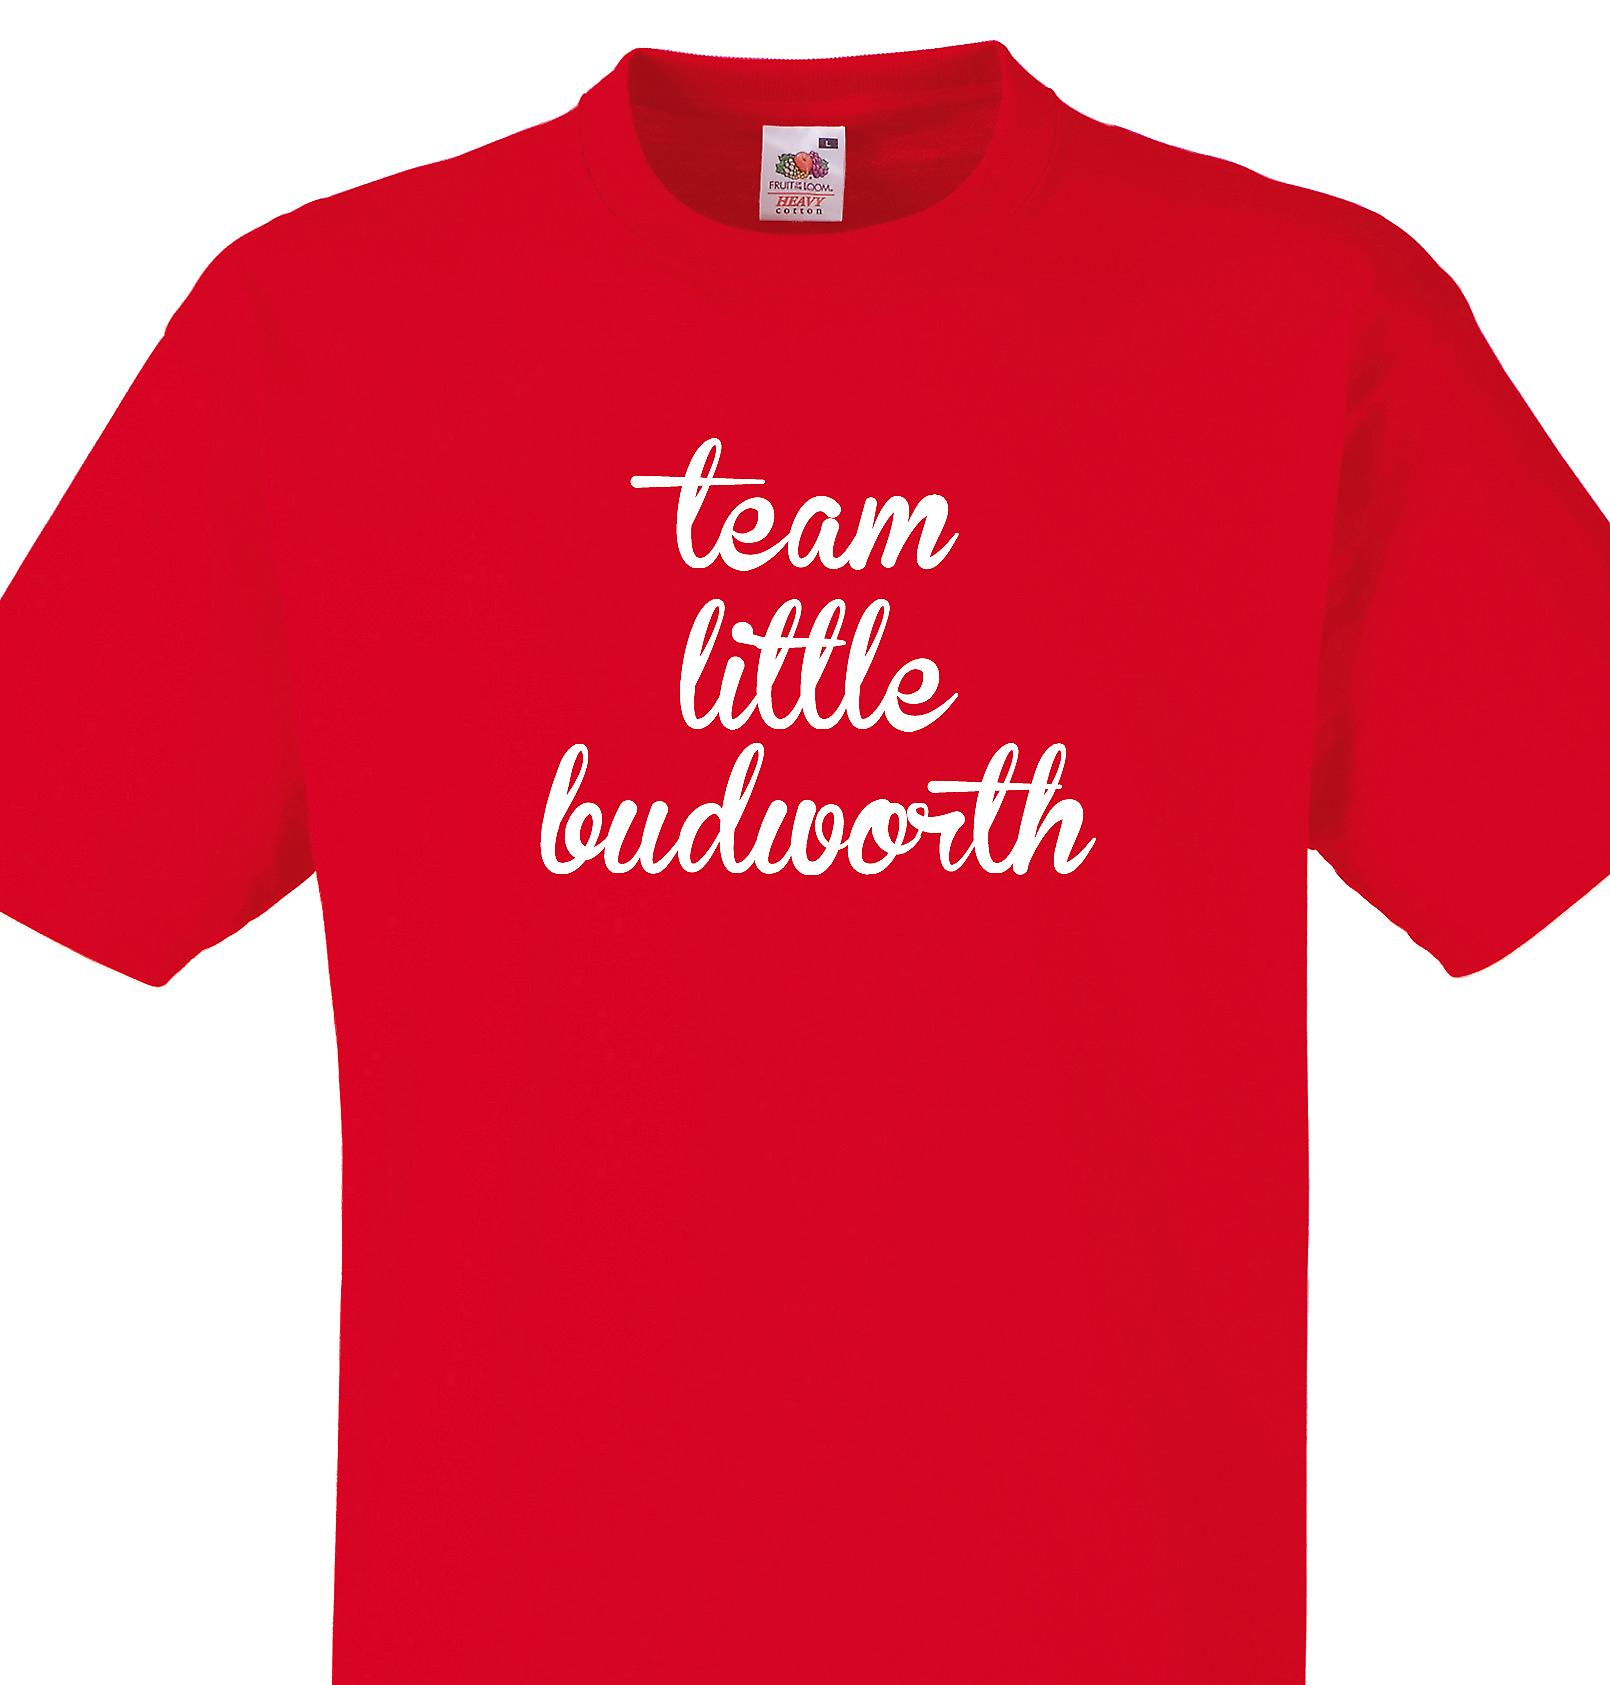 Team Little budworth Red T shirt